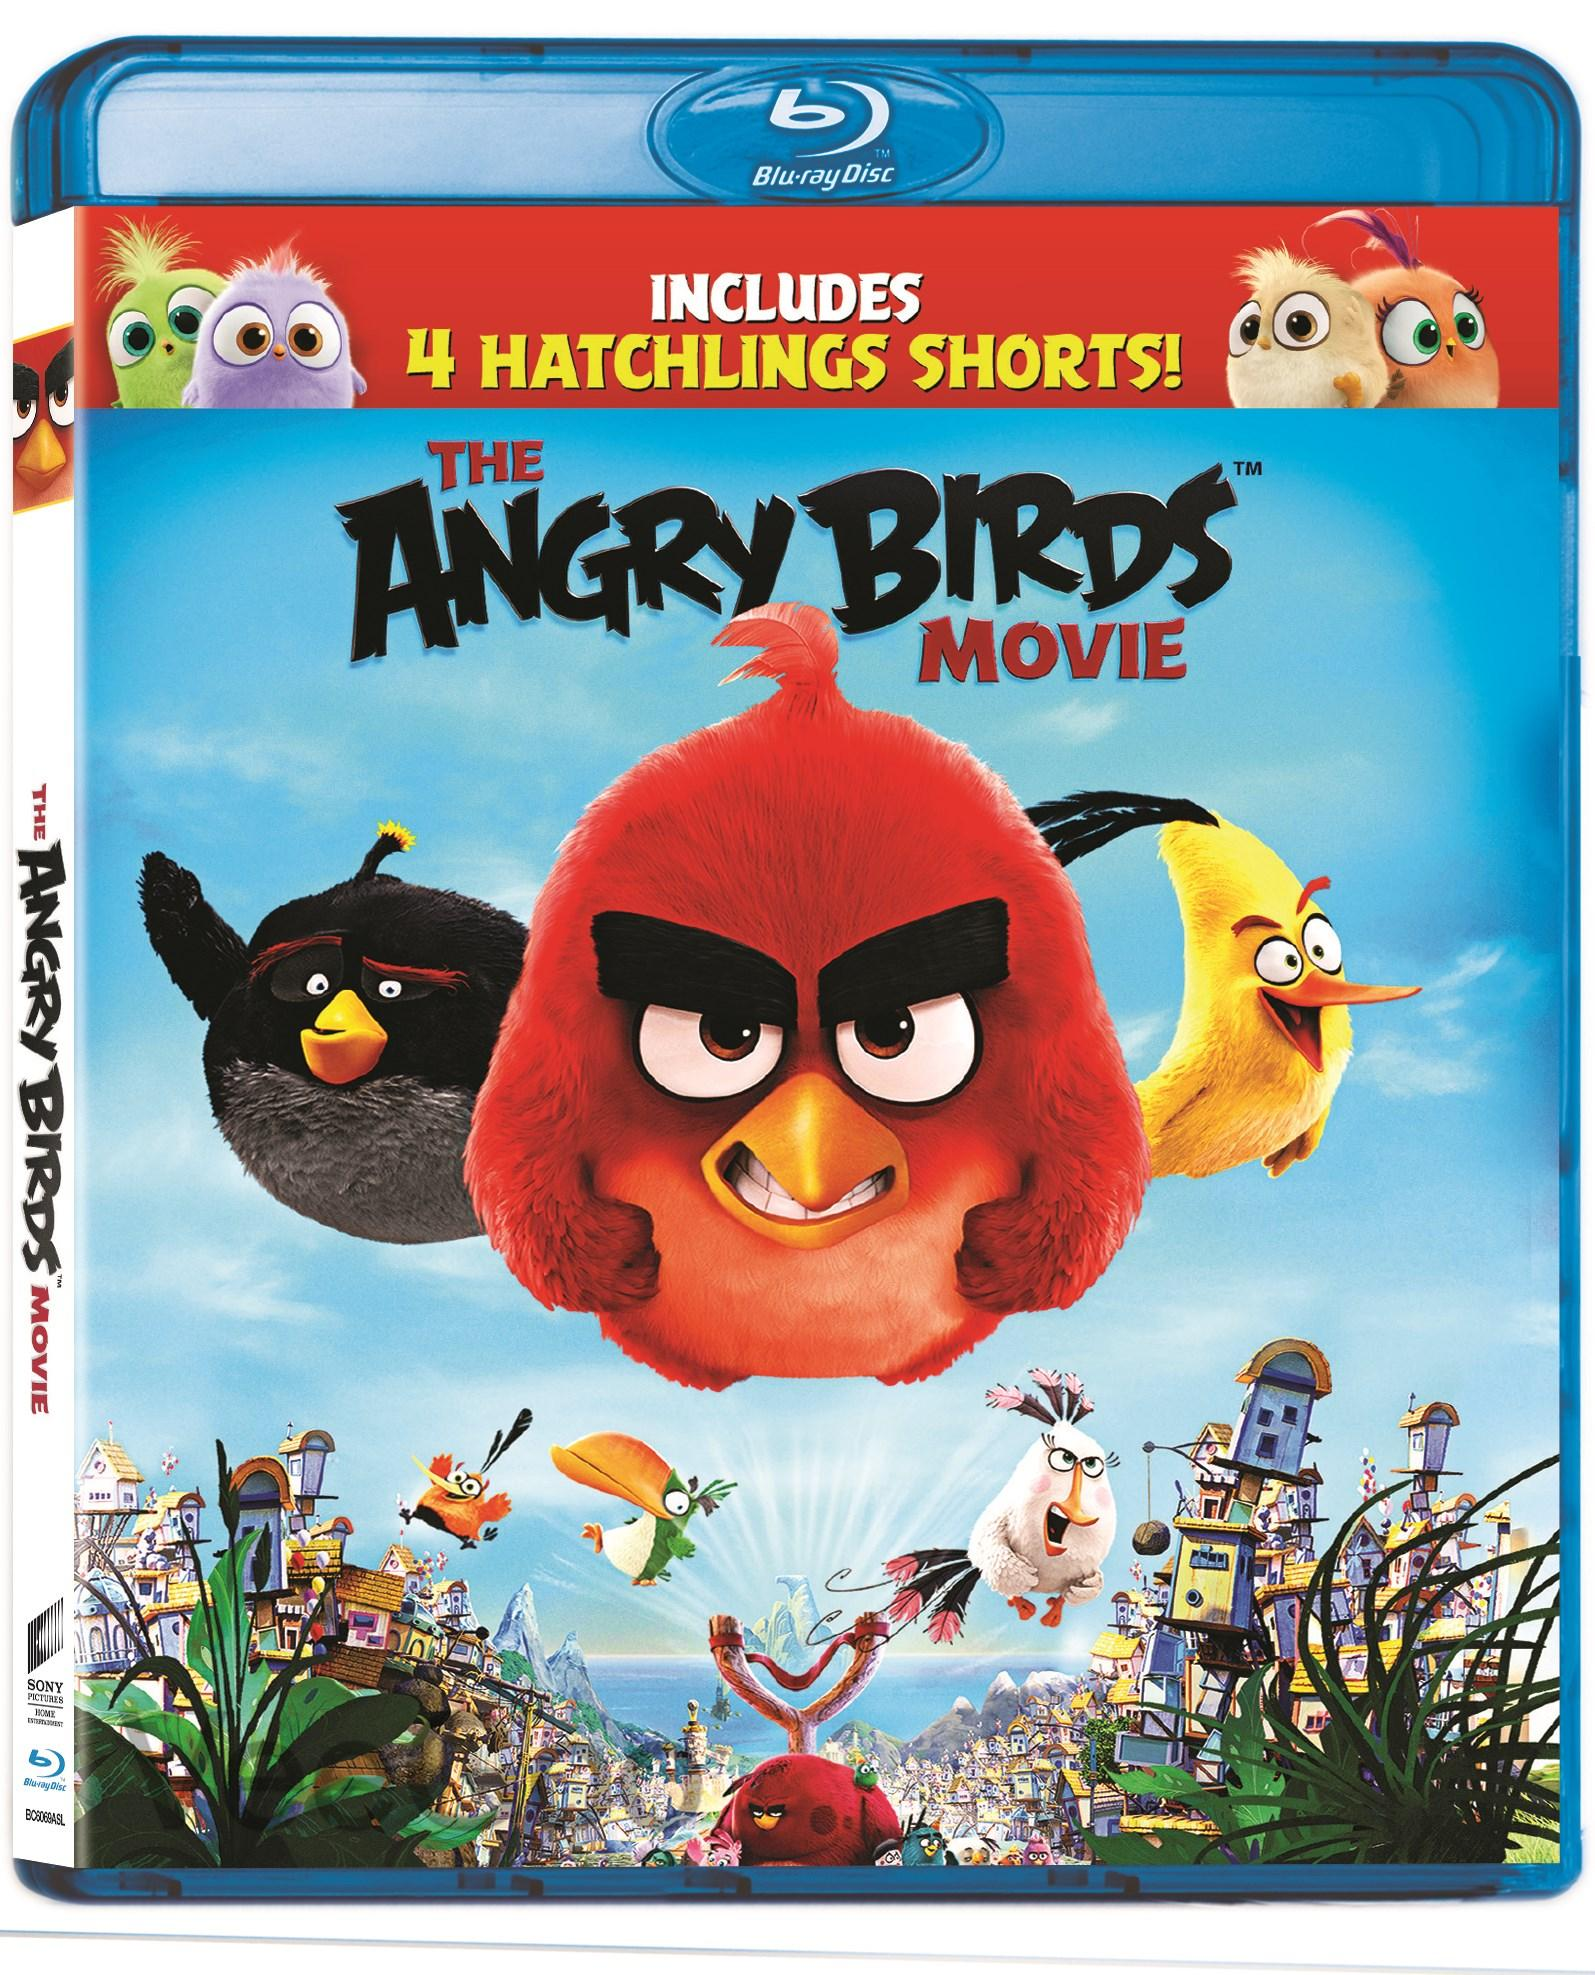 THE ANGRY BIRDS MOVIE Blu-Ray (PG/RA)